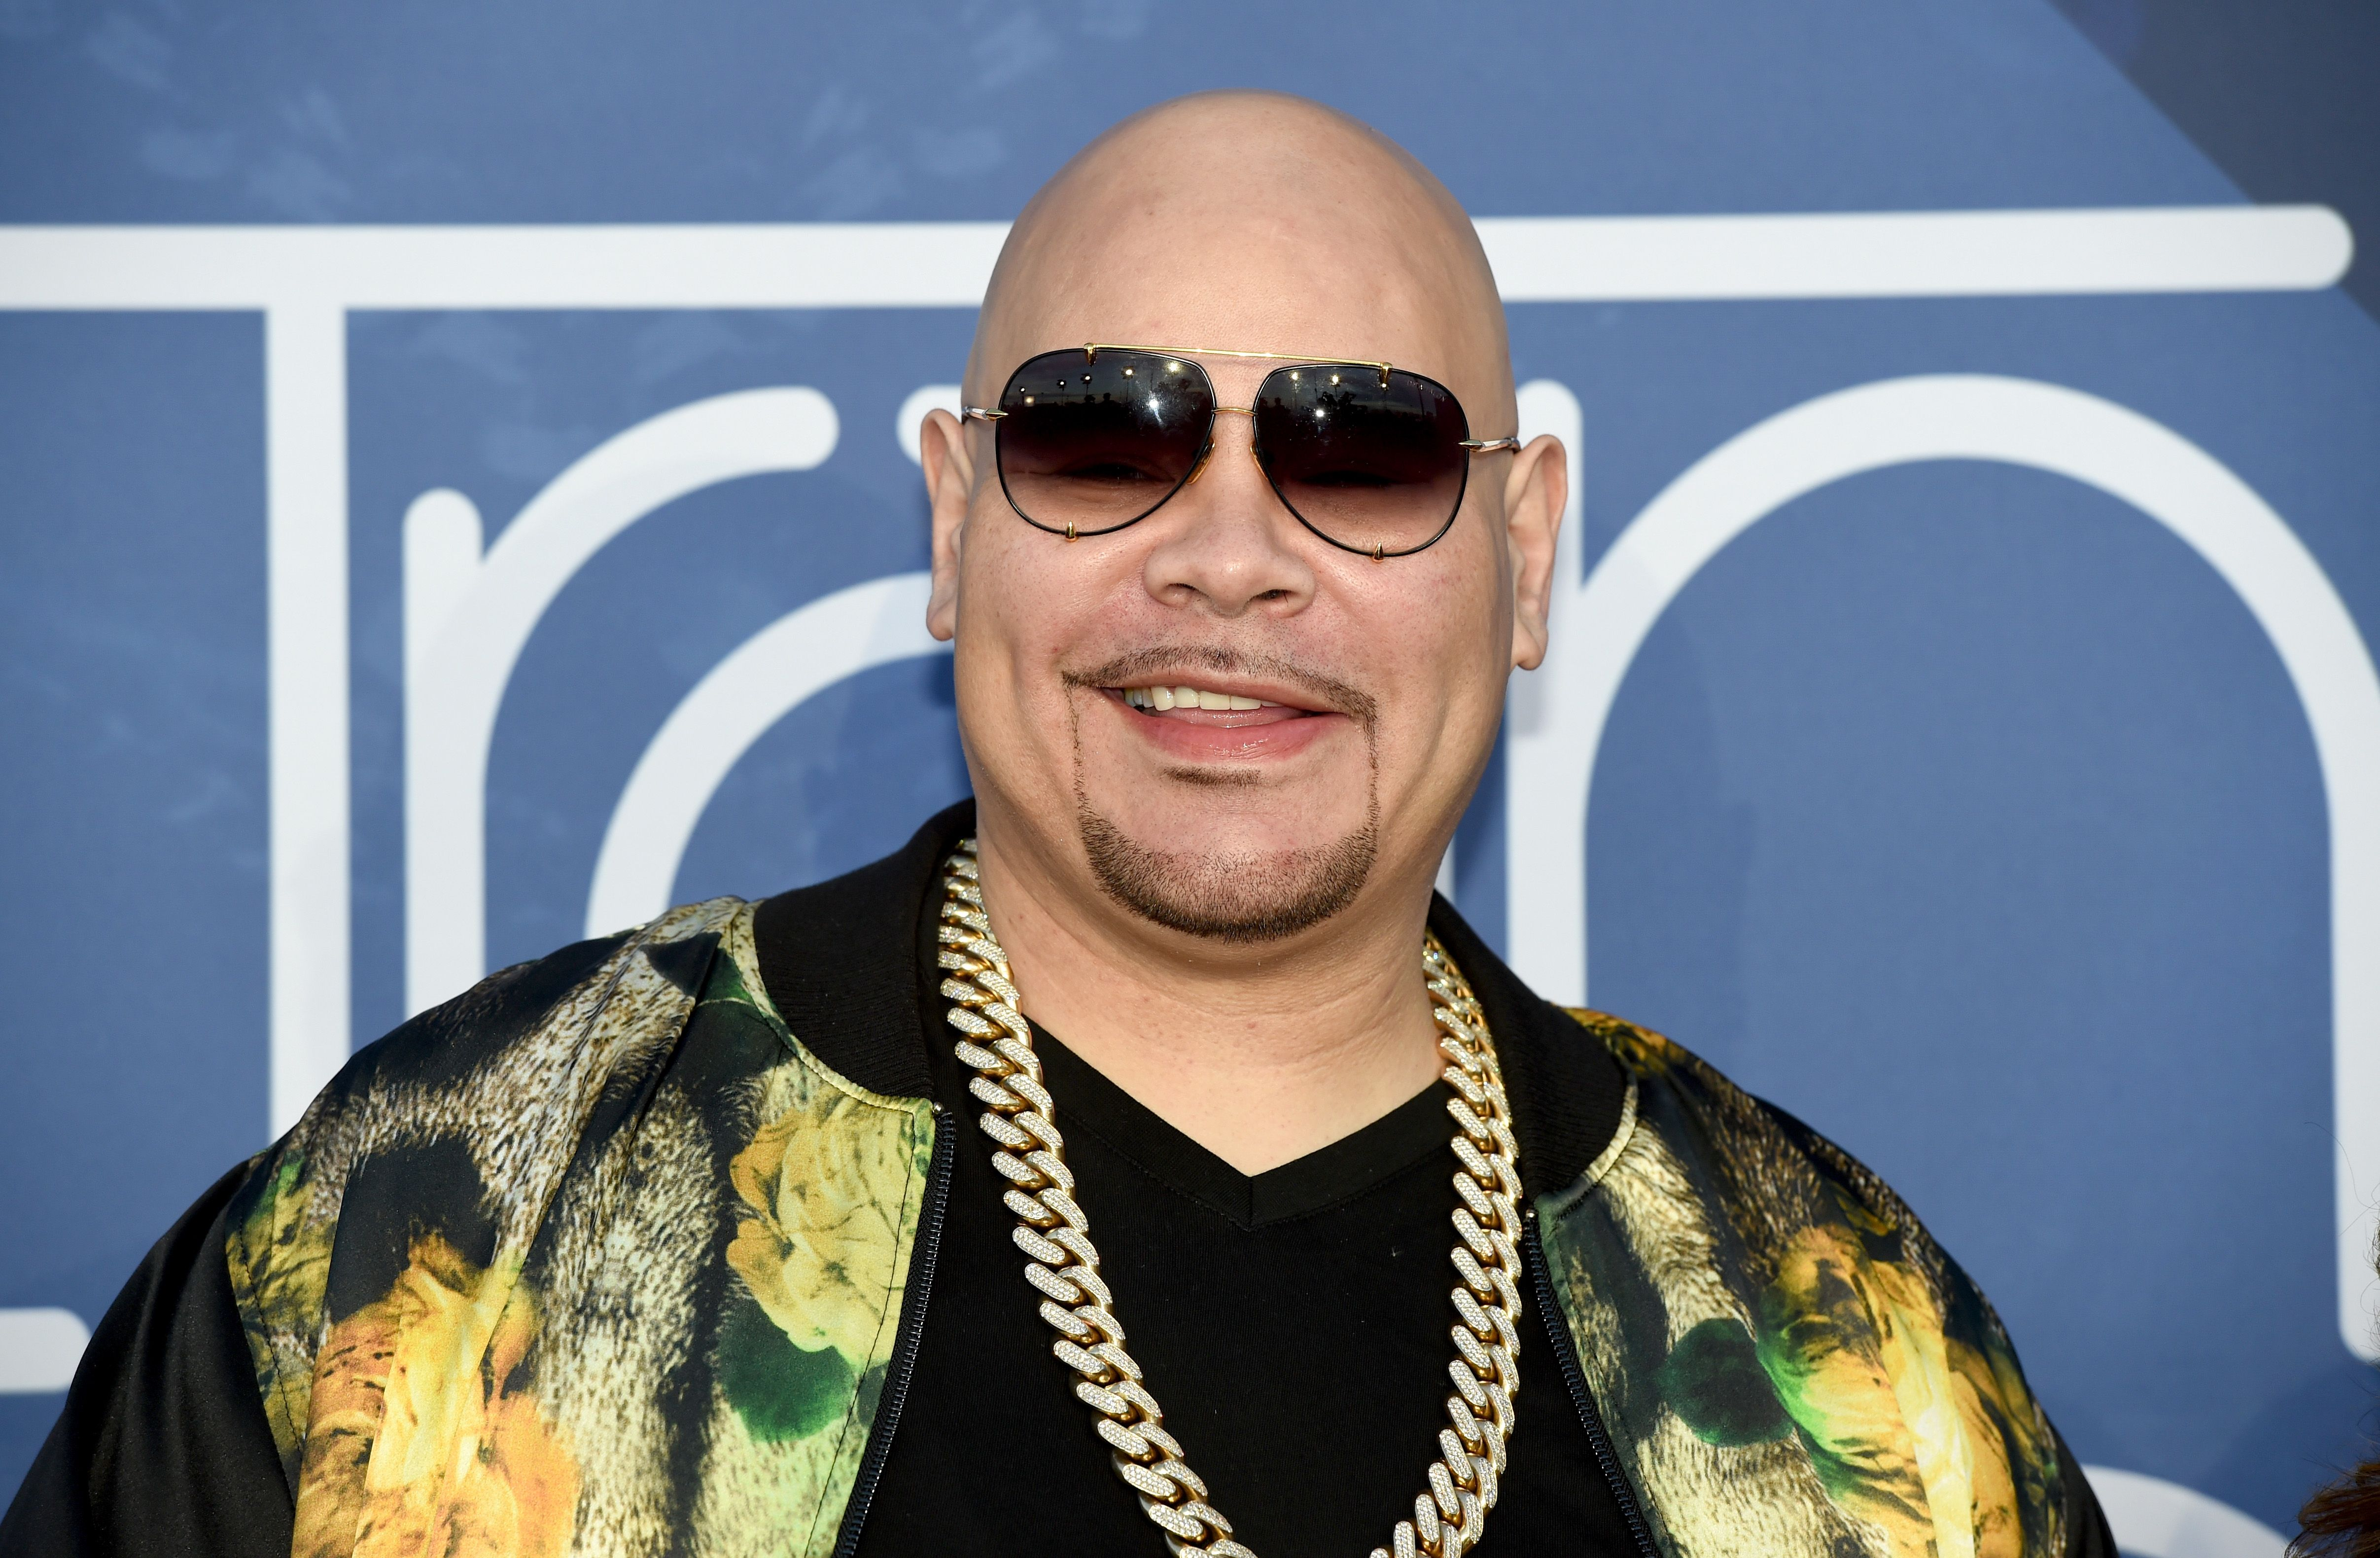 Rapper Fat Joe at the 2016 Soul Train Music Awards at the Orleans Arena on November 6, 2016 | Photo: Getty Images